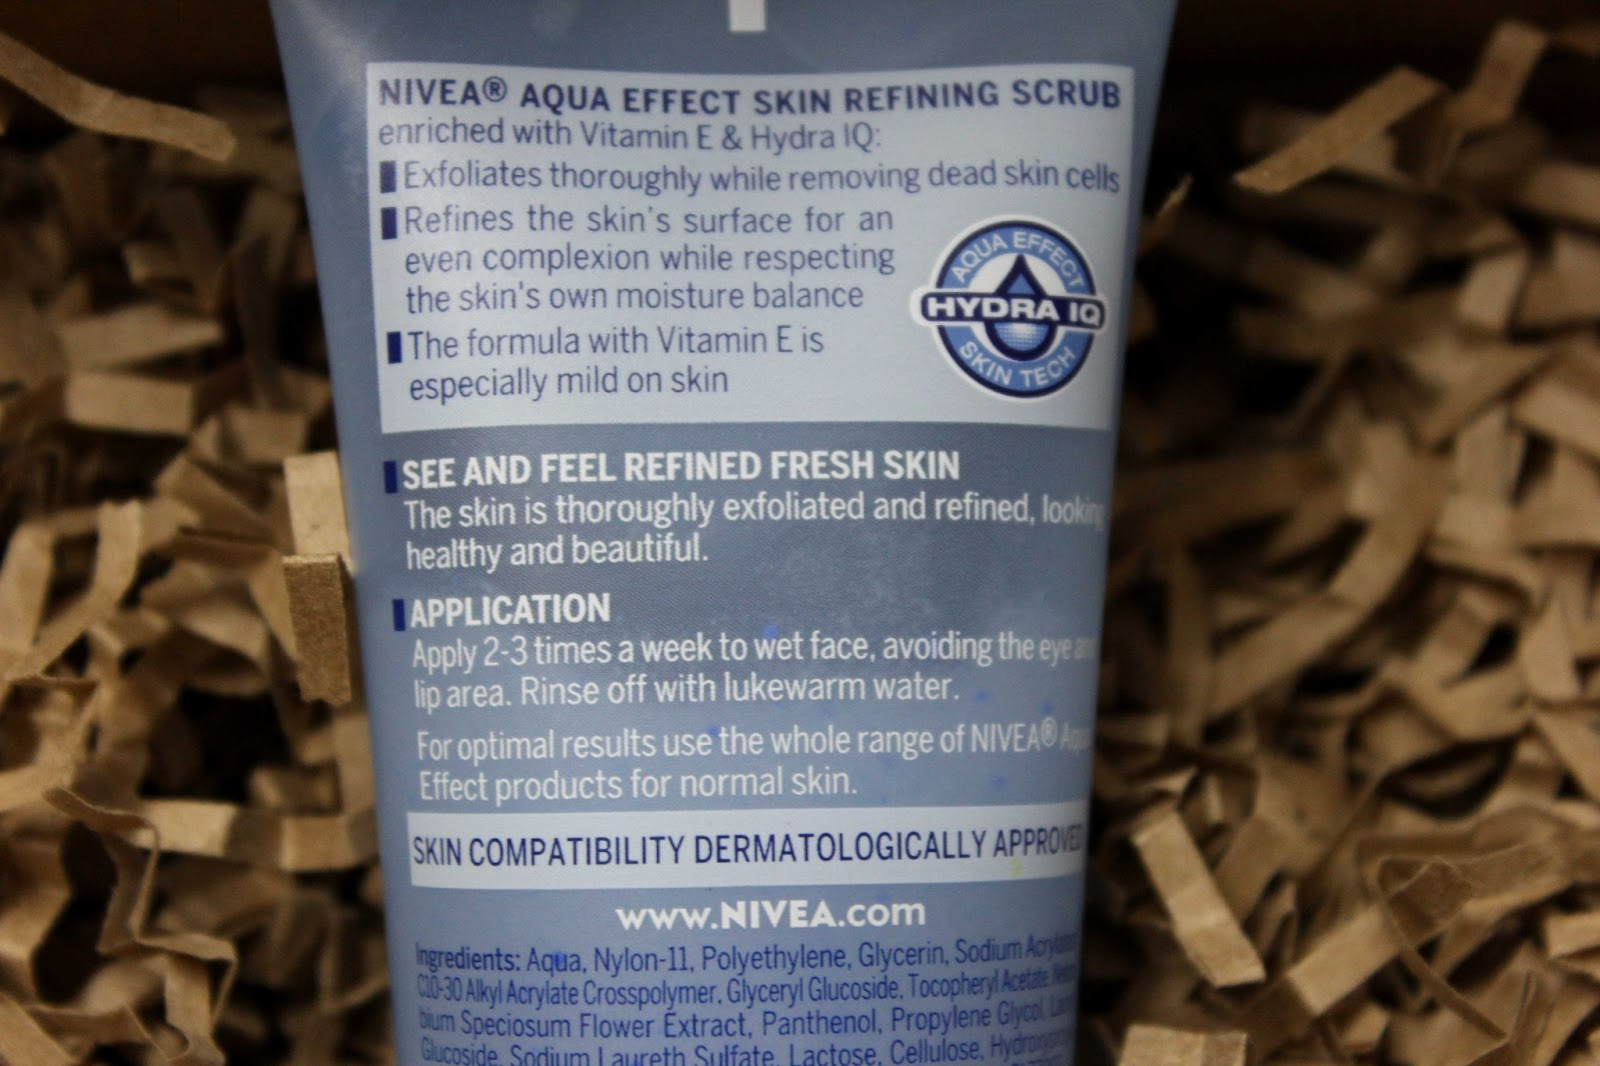 Nivea Aqua Effect Skin Refining Scrub Product Review at Perfect Skin Care for you